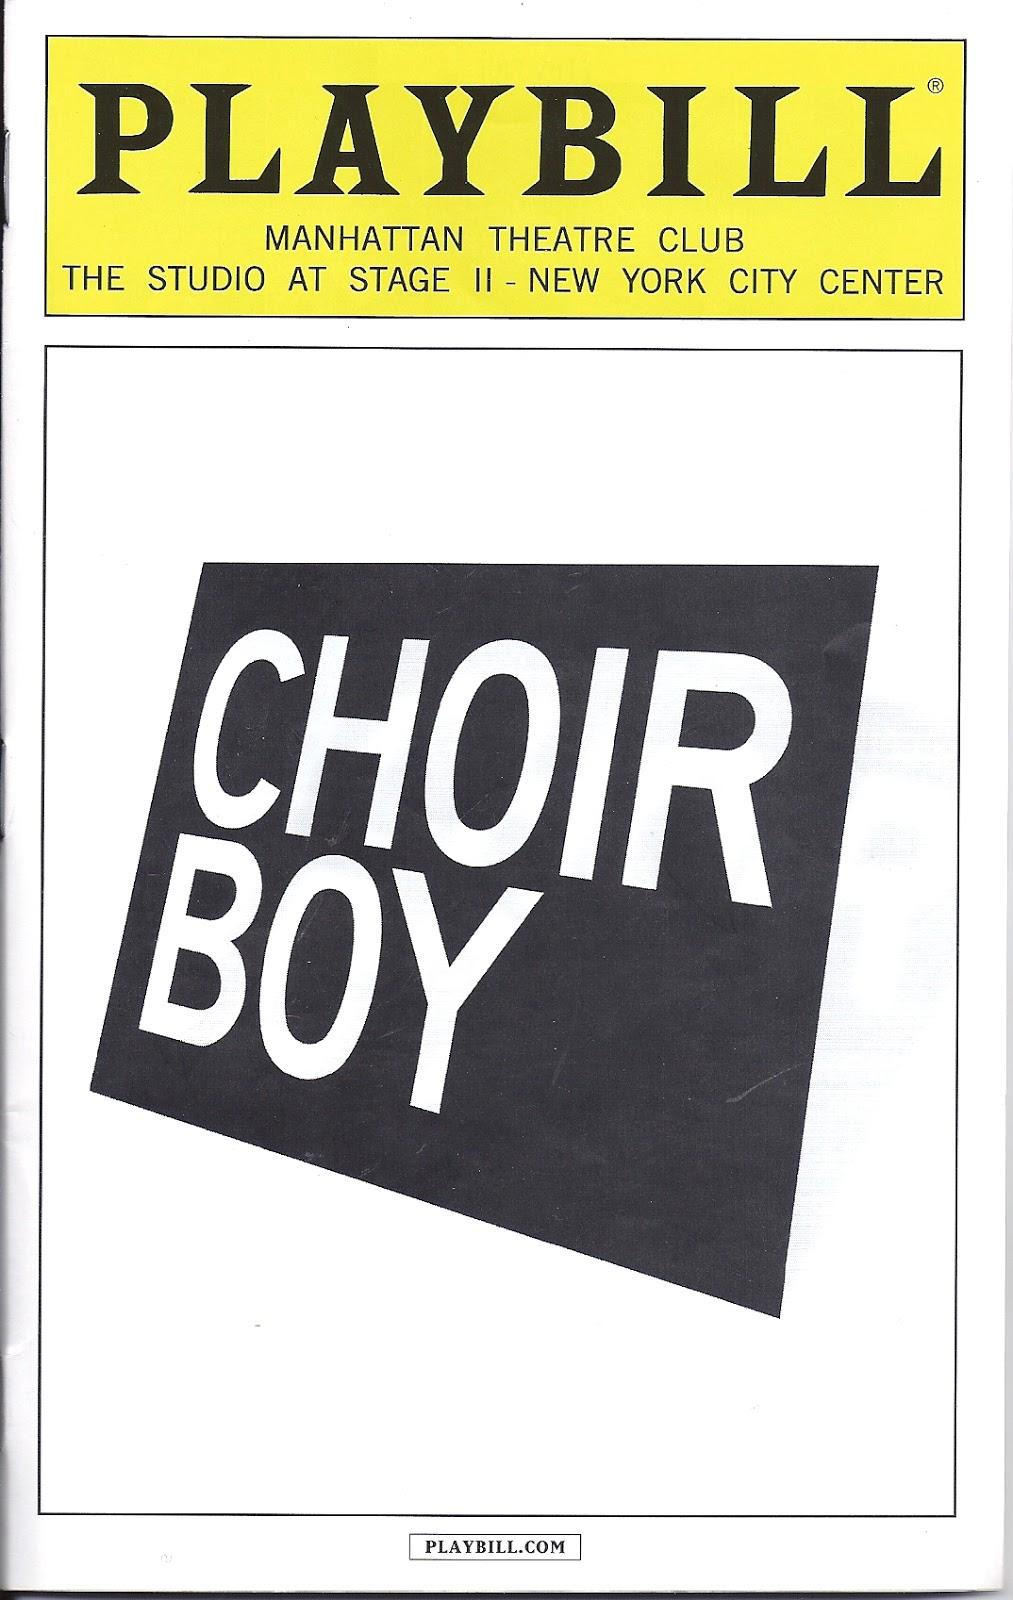 THEATRE'S LEITER SIDE: 52. Review of CHOIR BOY (July 11, 2013)